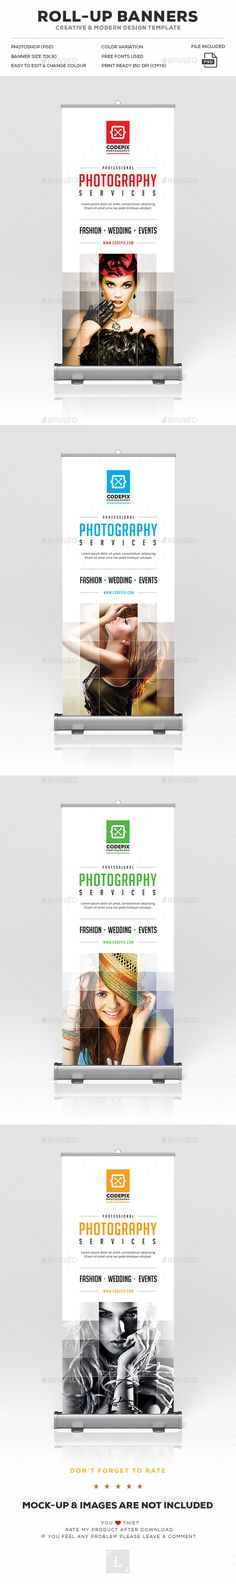 Photography Roll-Up Banner  — PSD Template #signage #advert • Download ➝ https://graphicriver.net/item/photography-rollup-banner/18074518?ref=pxcr